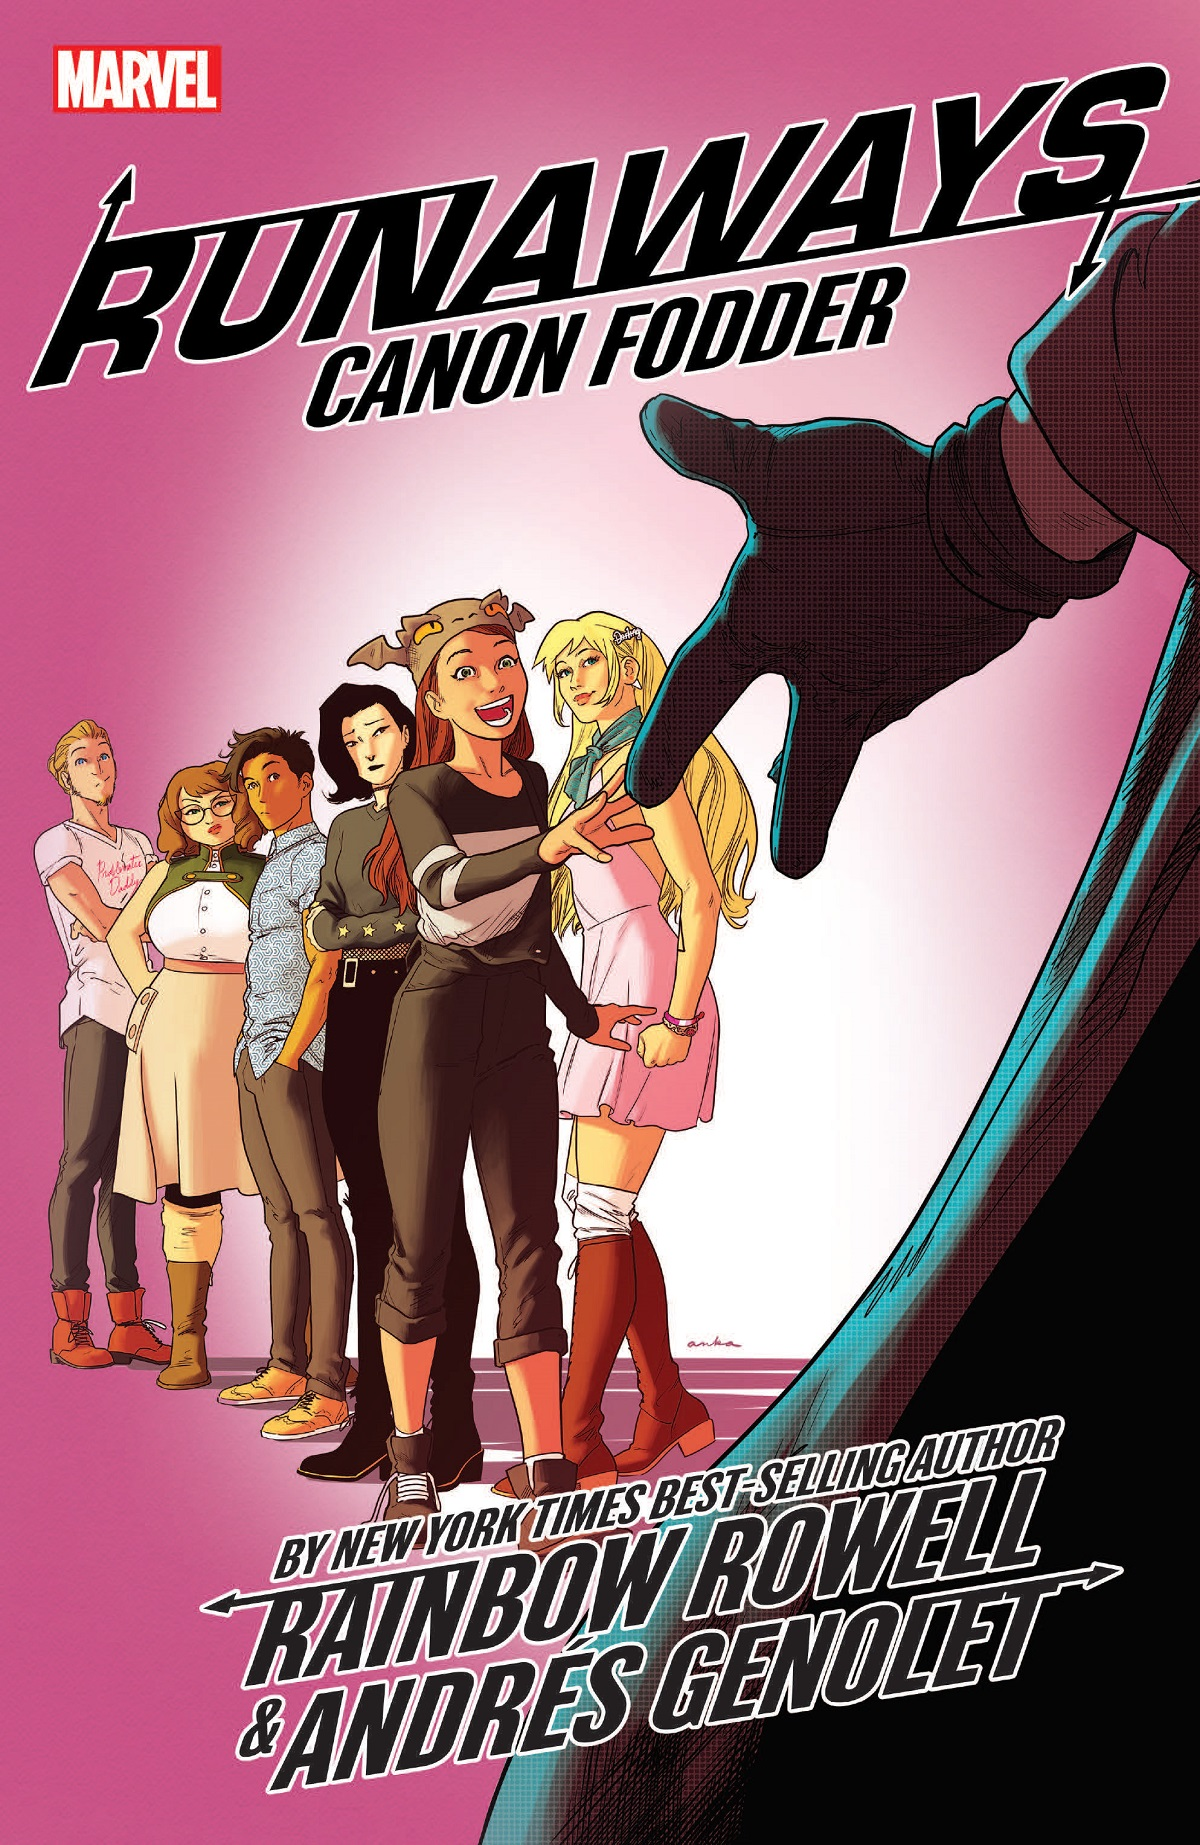 Runaways by Rainbow Rowell Vol. 5: Cannon Fodder (Trade Paperback)